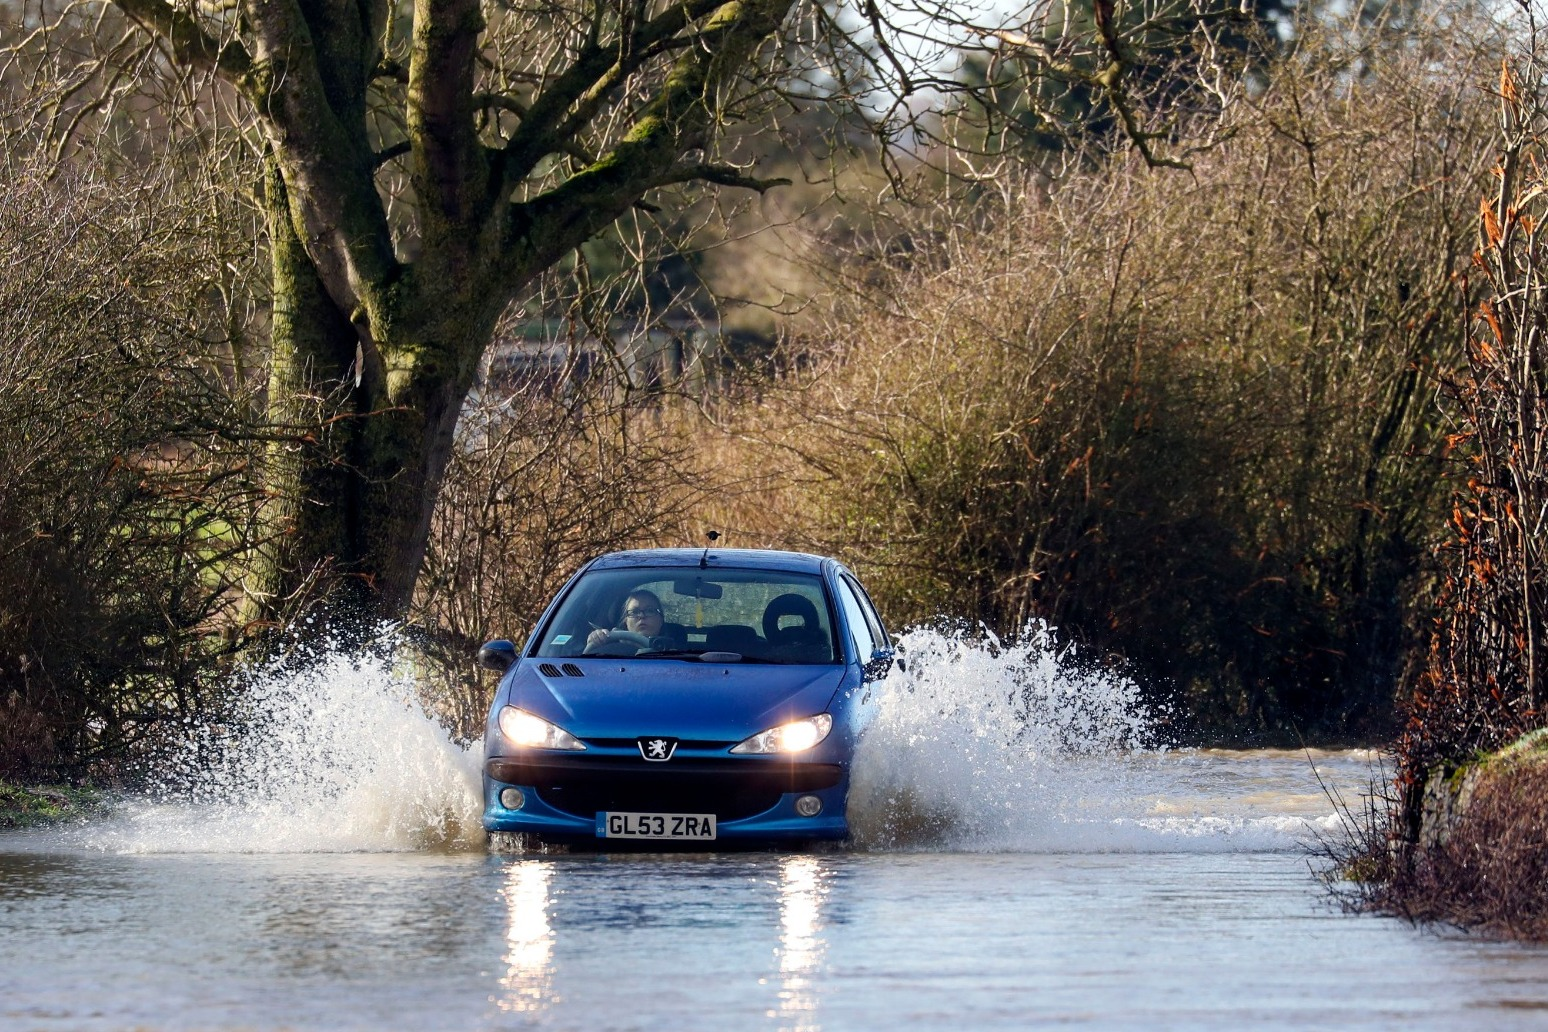 Cars submerged amid flooding after Storm Brendan